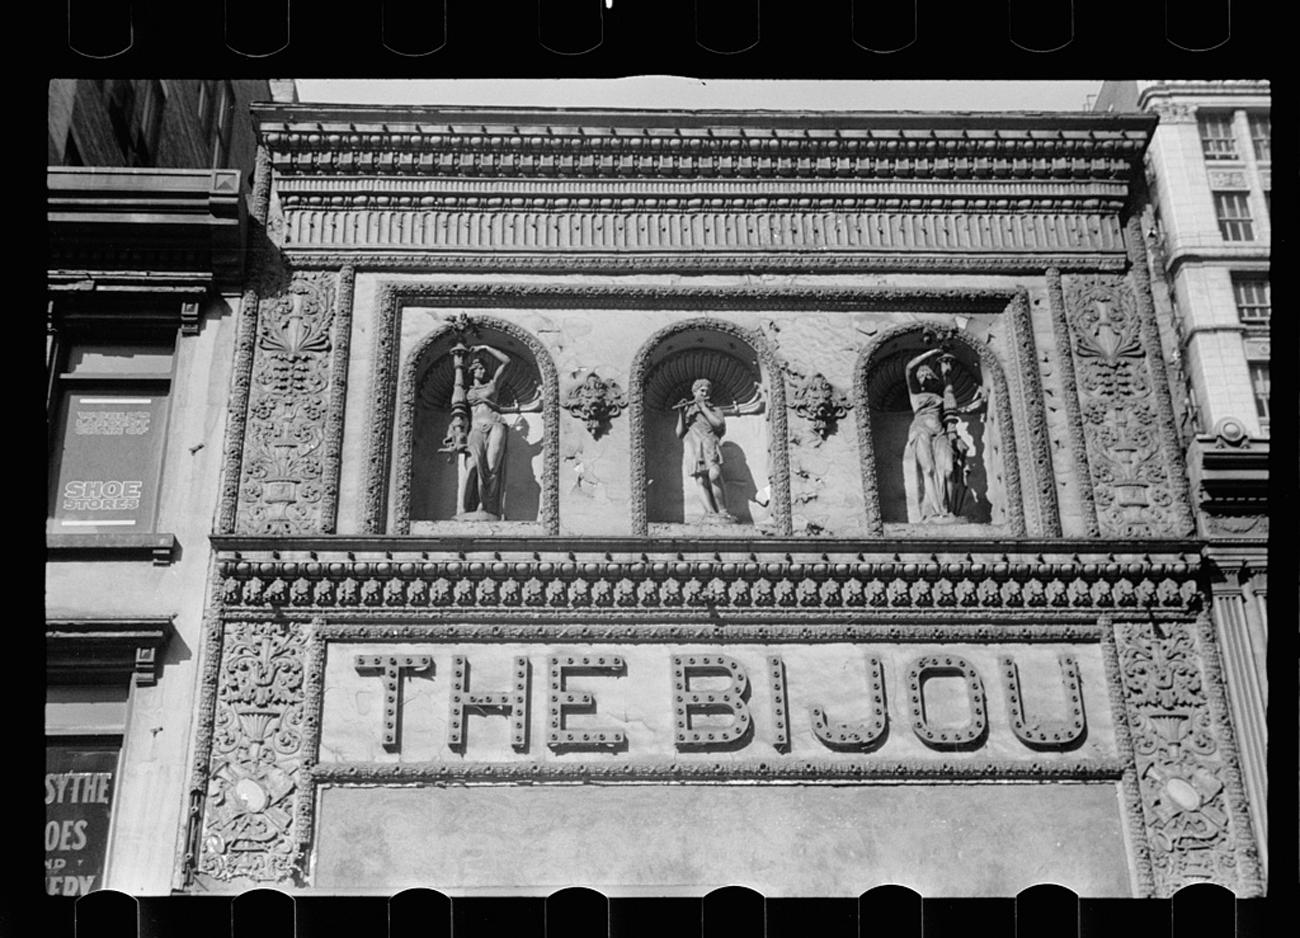 """Old playhouse, Cincinnati, Ohio"" shows the Bijou Theatre in October 1938{ }/ Image: John Vachon for the U.S. Farm Security Administration/Office of War Information accessed via the Library of Congress Archives // Published: 3.4.19"